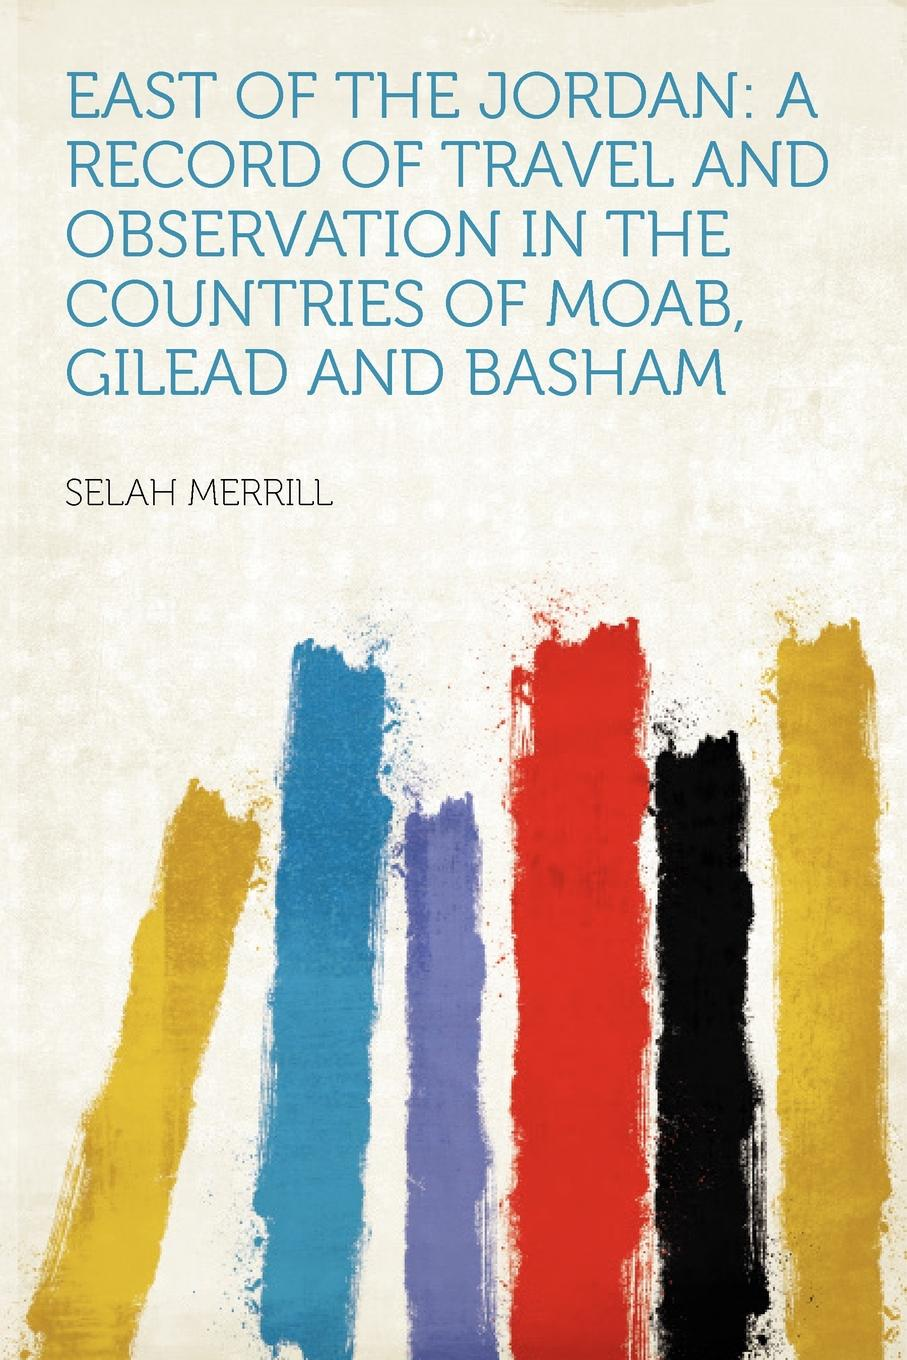 East of the Jordan. a Record of Travel and Observation in the Countries of Moab, Gilead and Basham